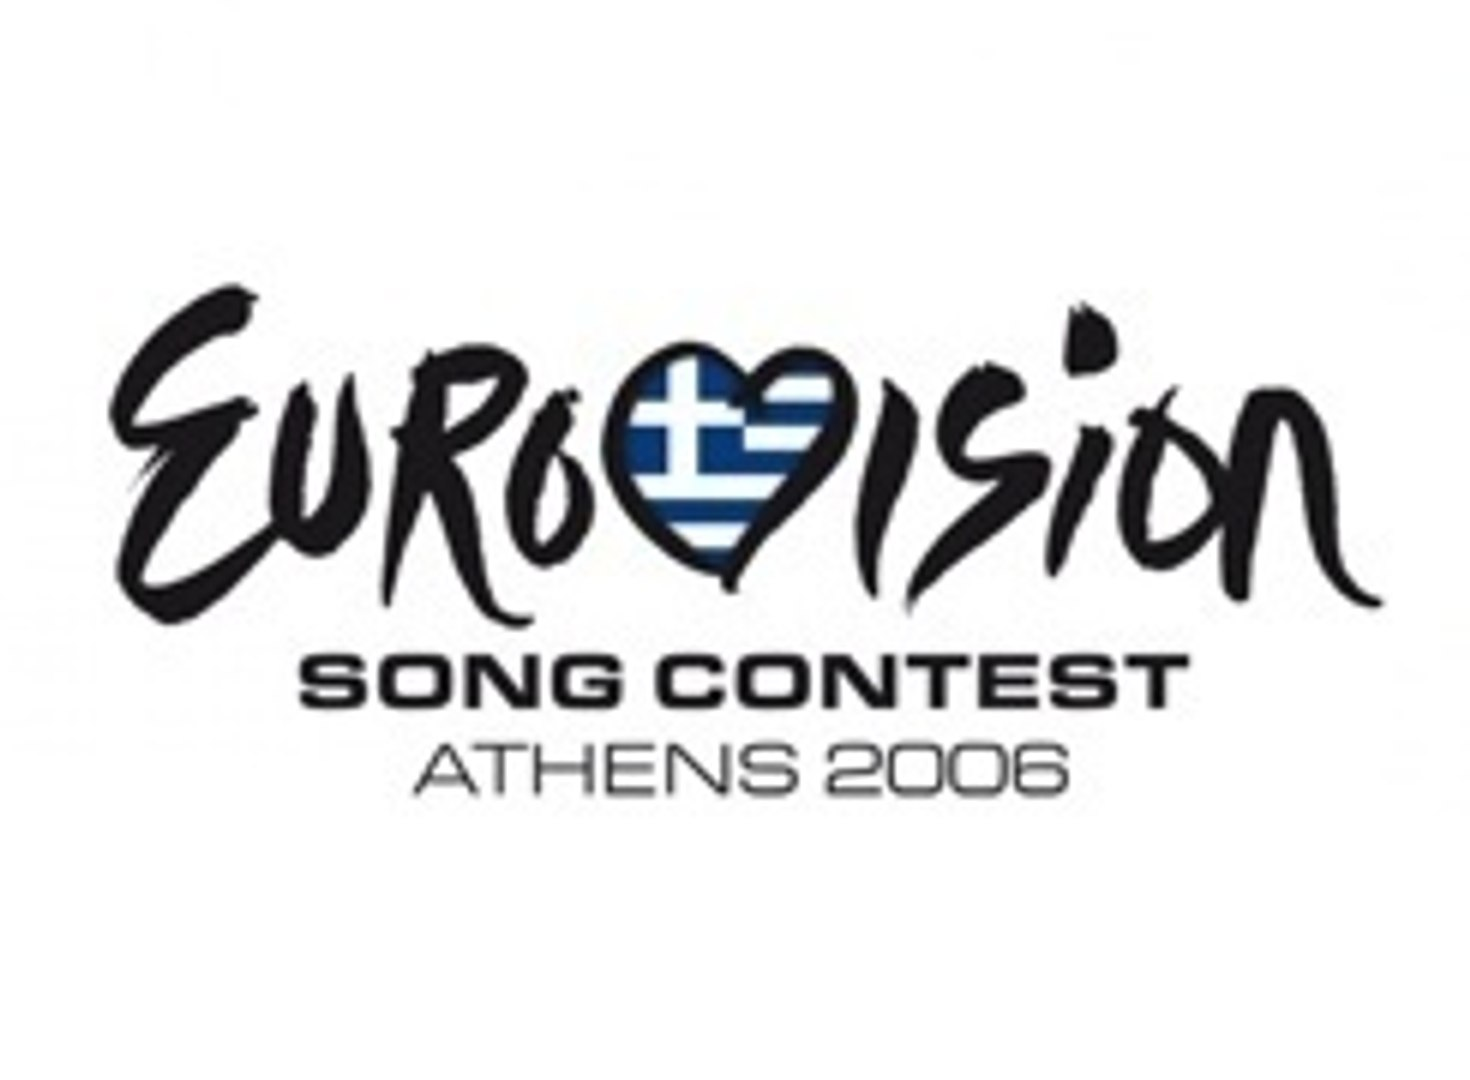 Eurovision Song Contest Athens 2006 Final Opening